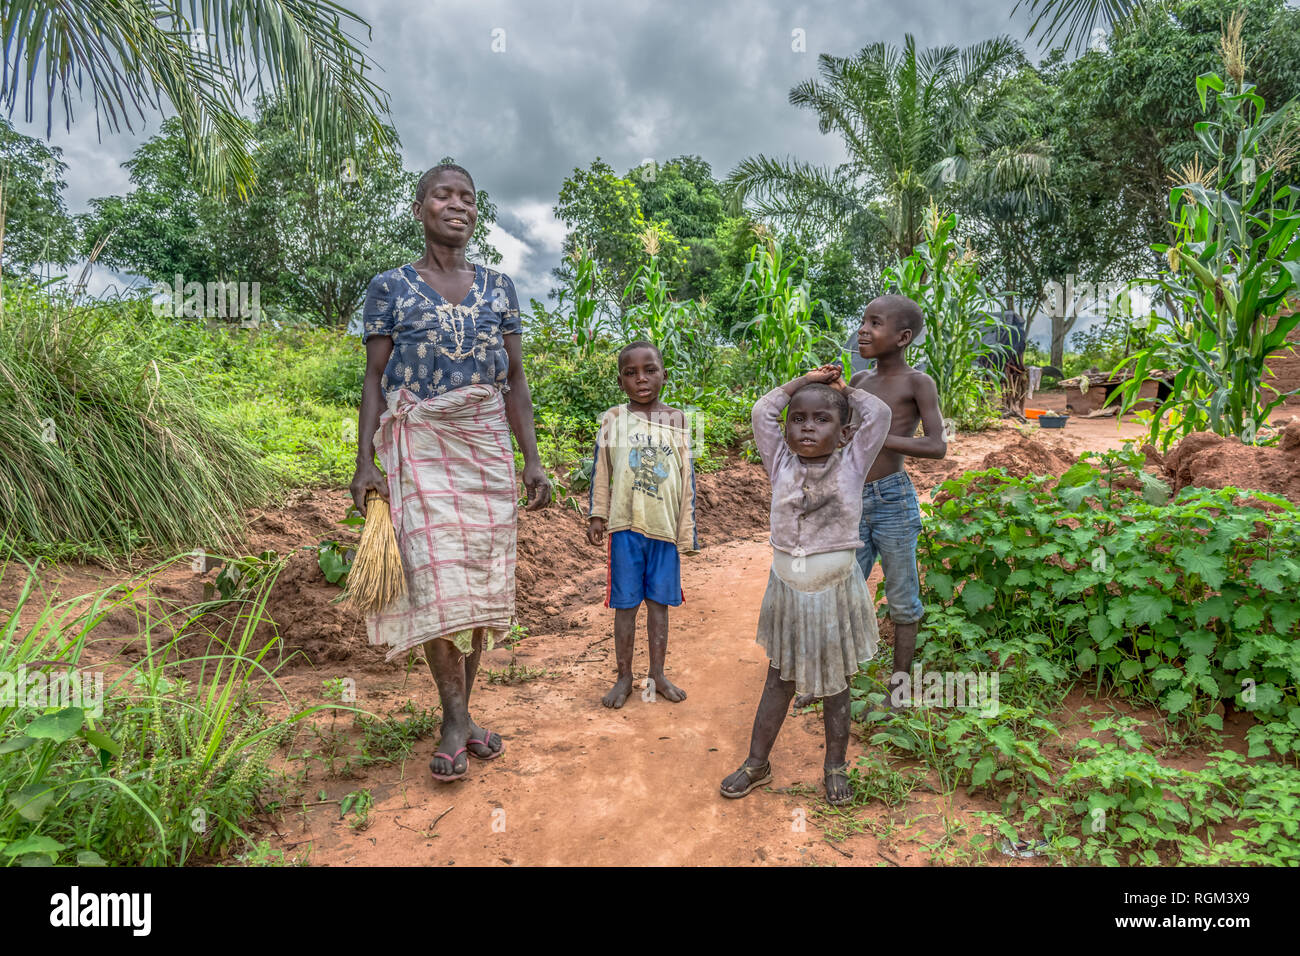 Malange / Angola - 12 08 2018 : View of an Angolan family, mother with her three children, in front of her small farmland - Stock Image